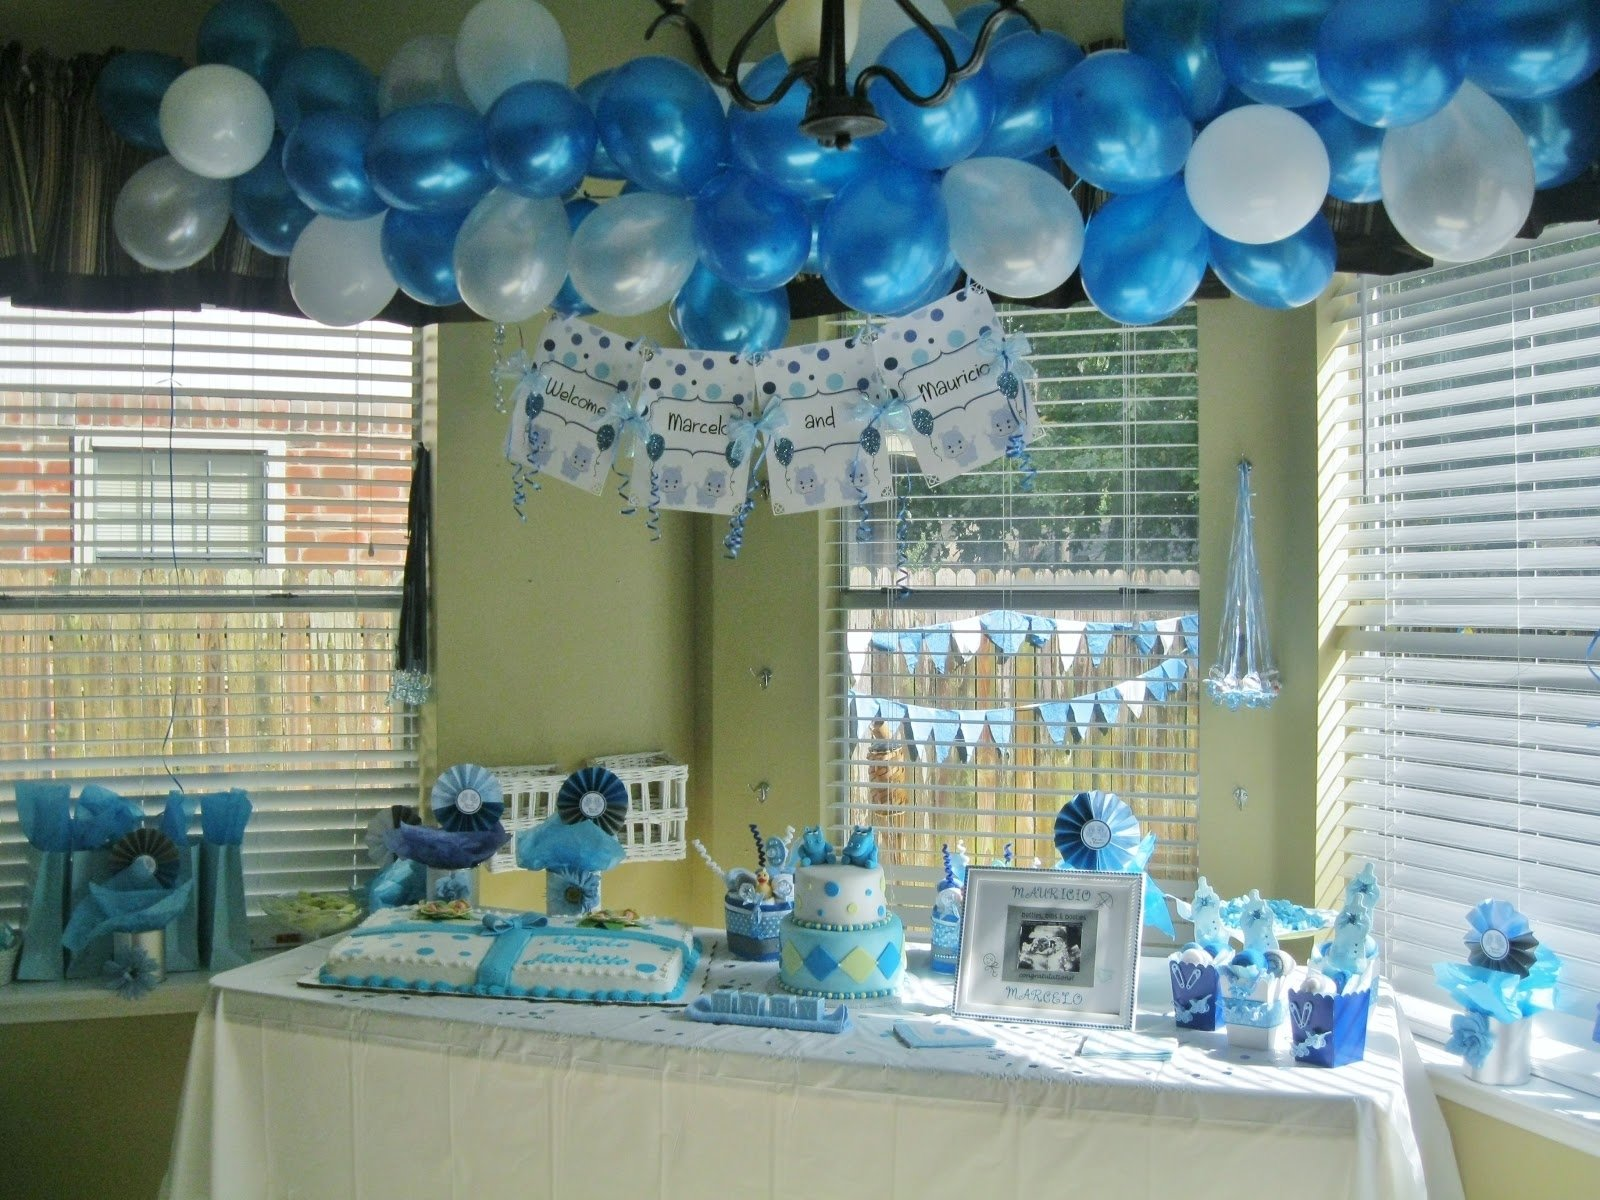 10 Fabulous Boy Baby Shower Theme Ideas cool ideas for baby shower boy amicusenergy 2021